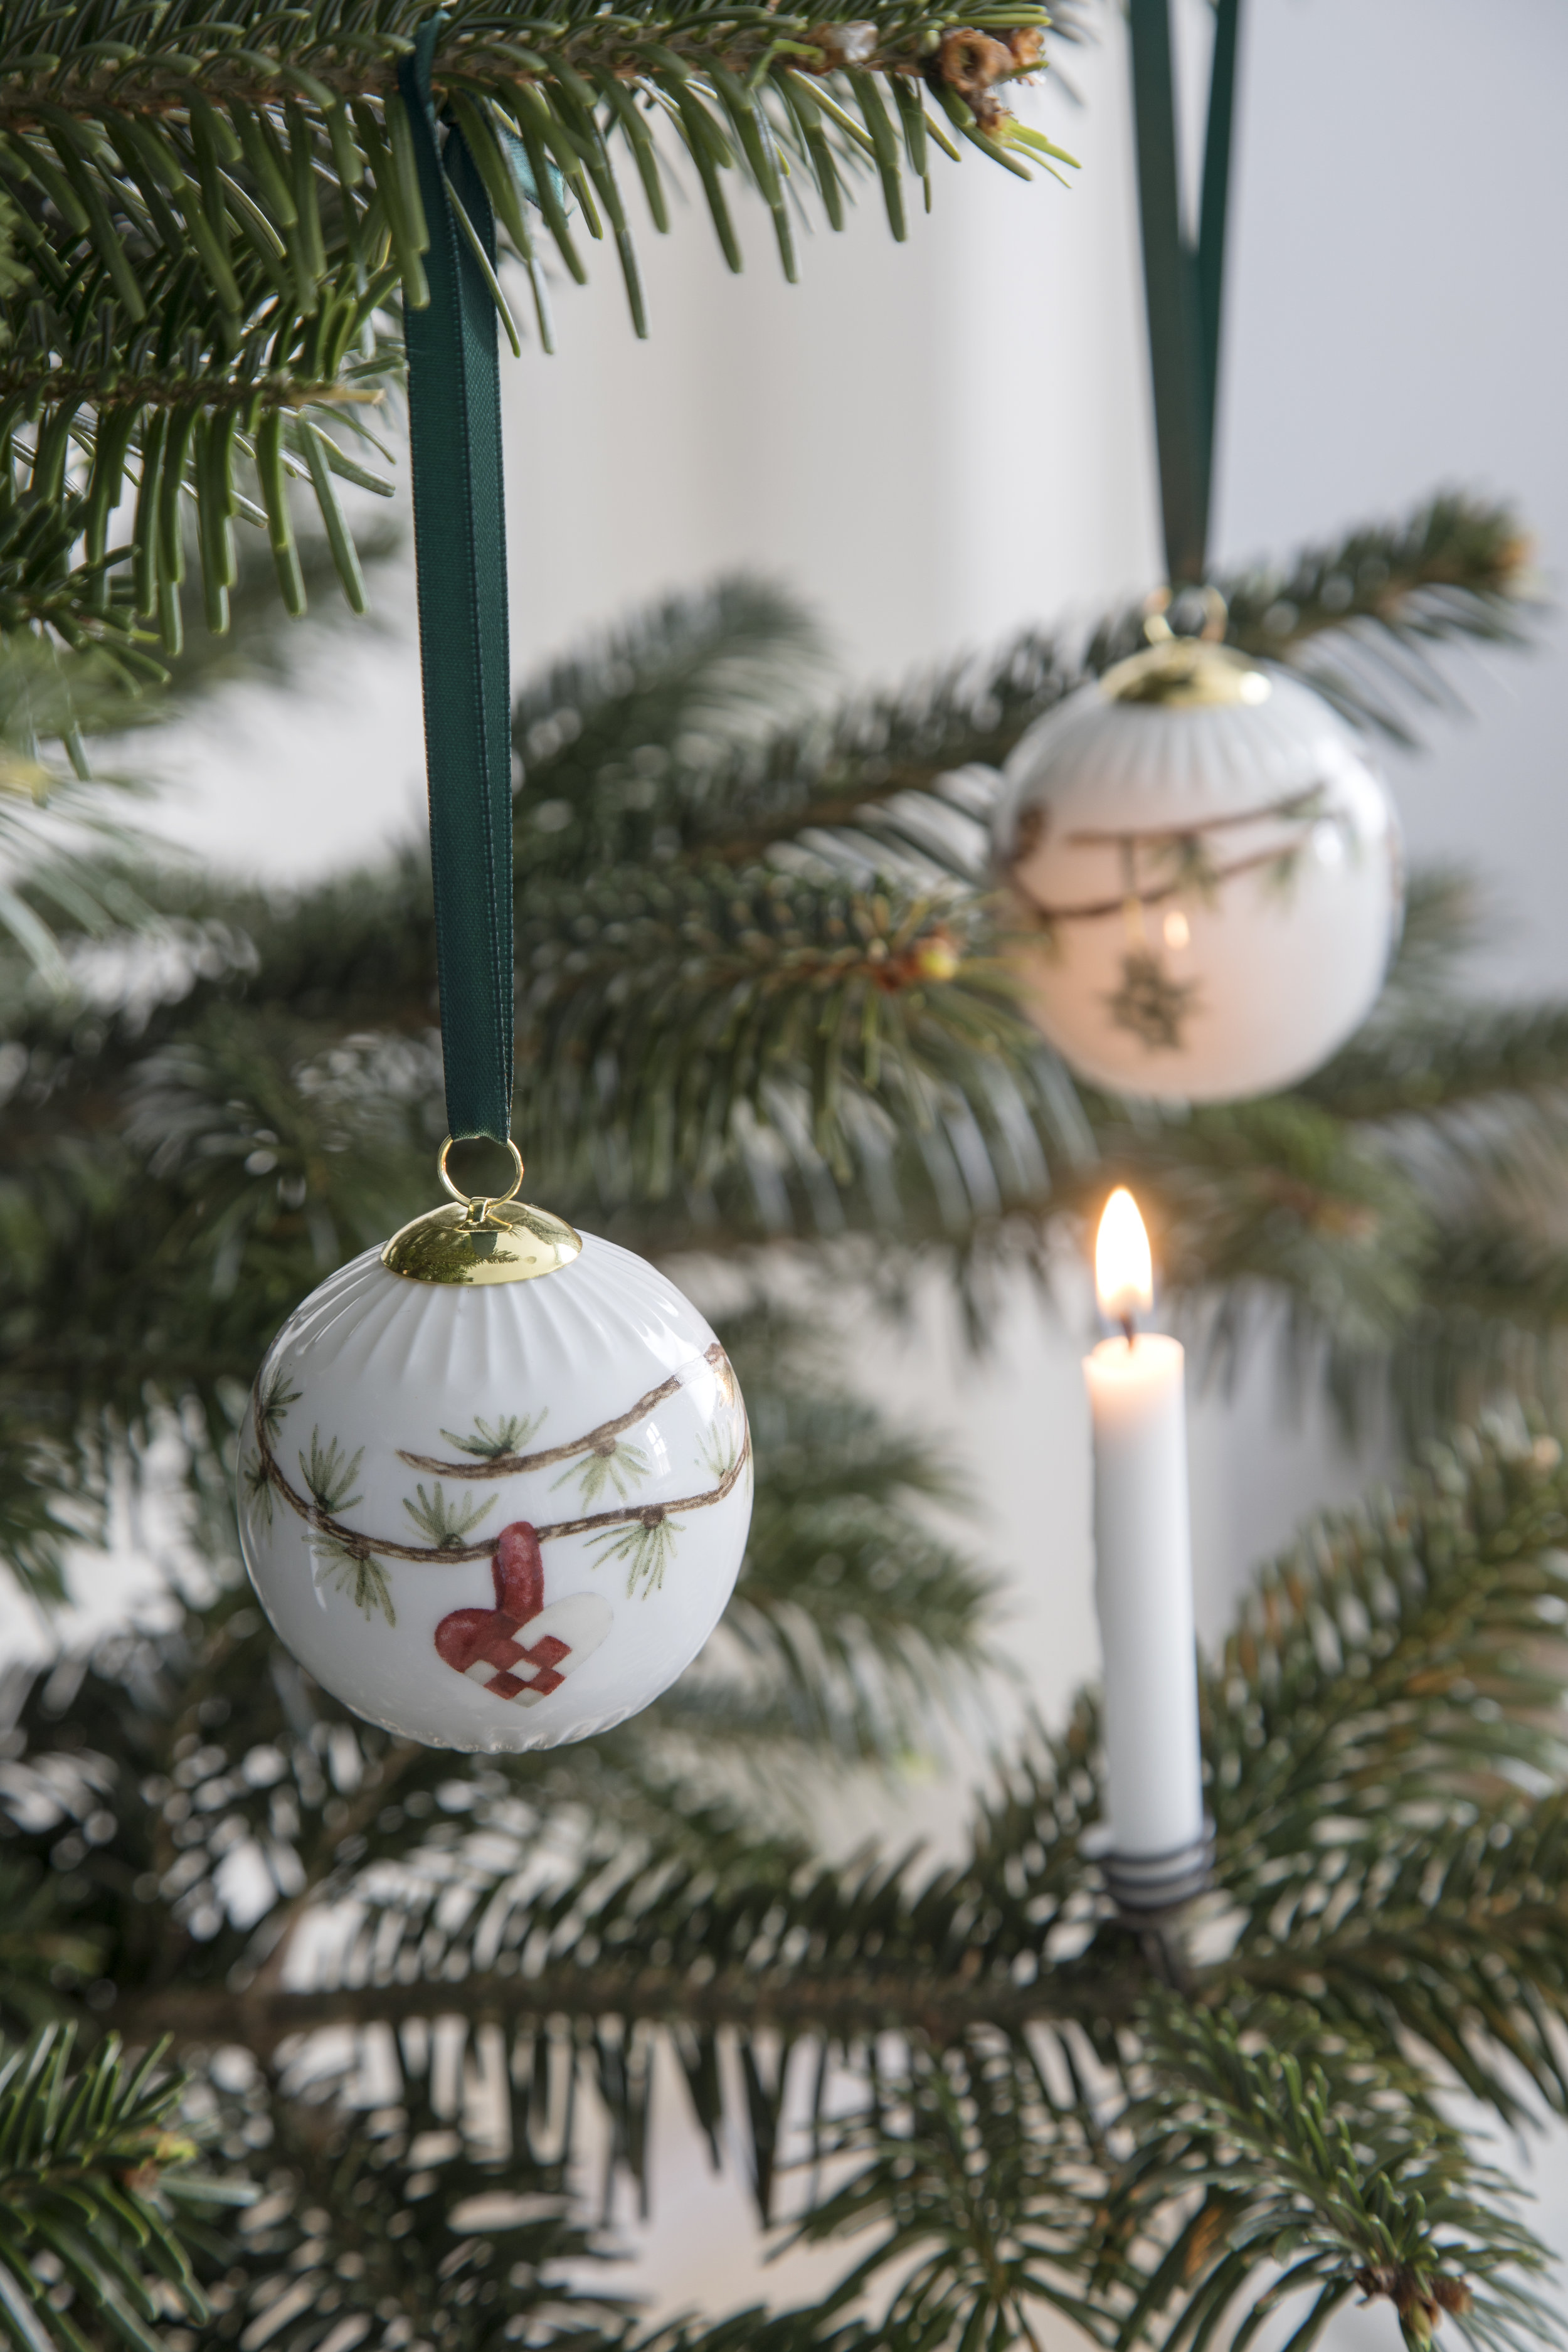 The decoration of the Christmas ornament will change every year.